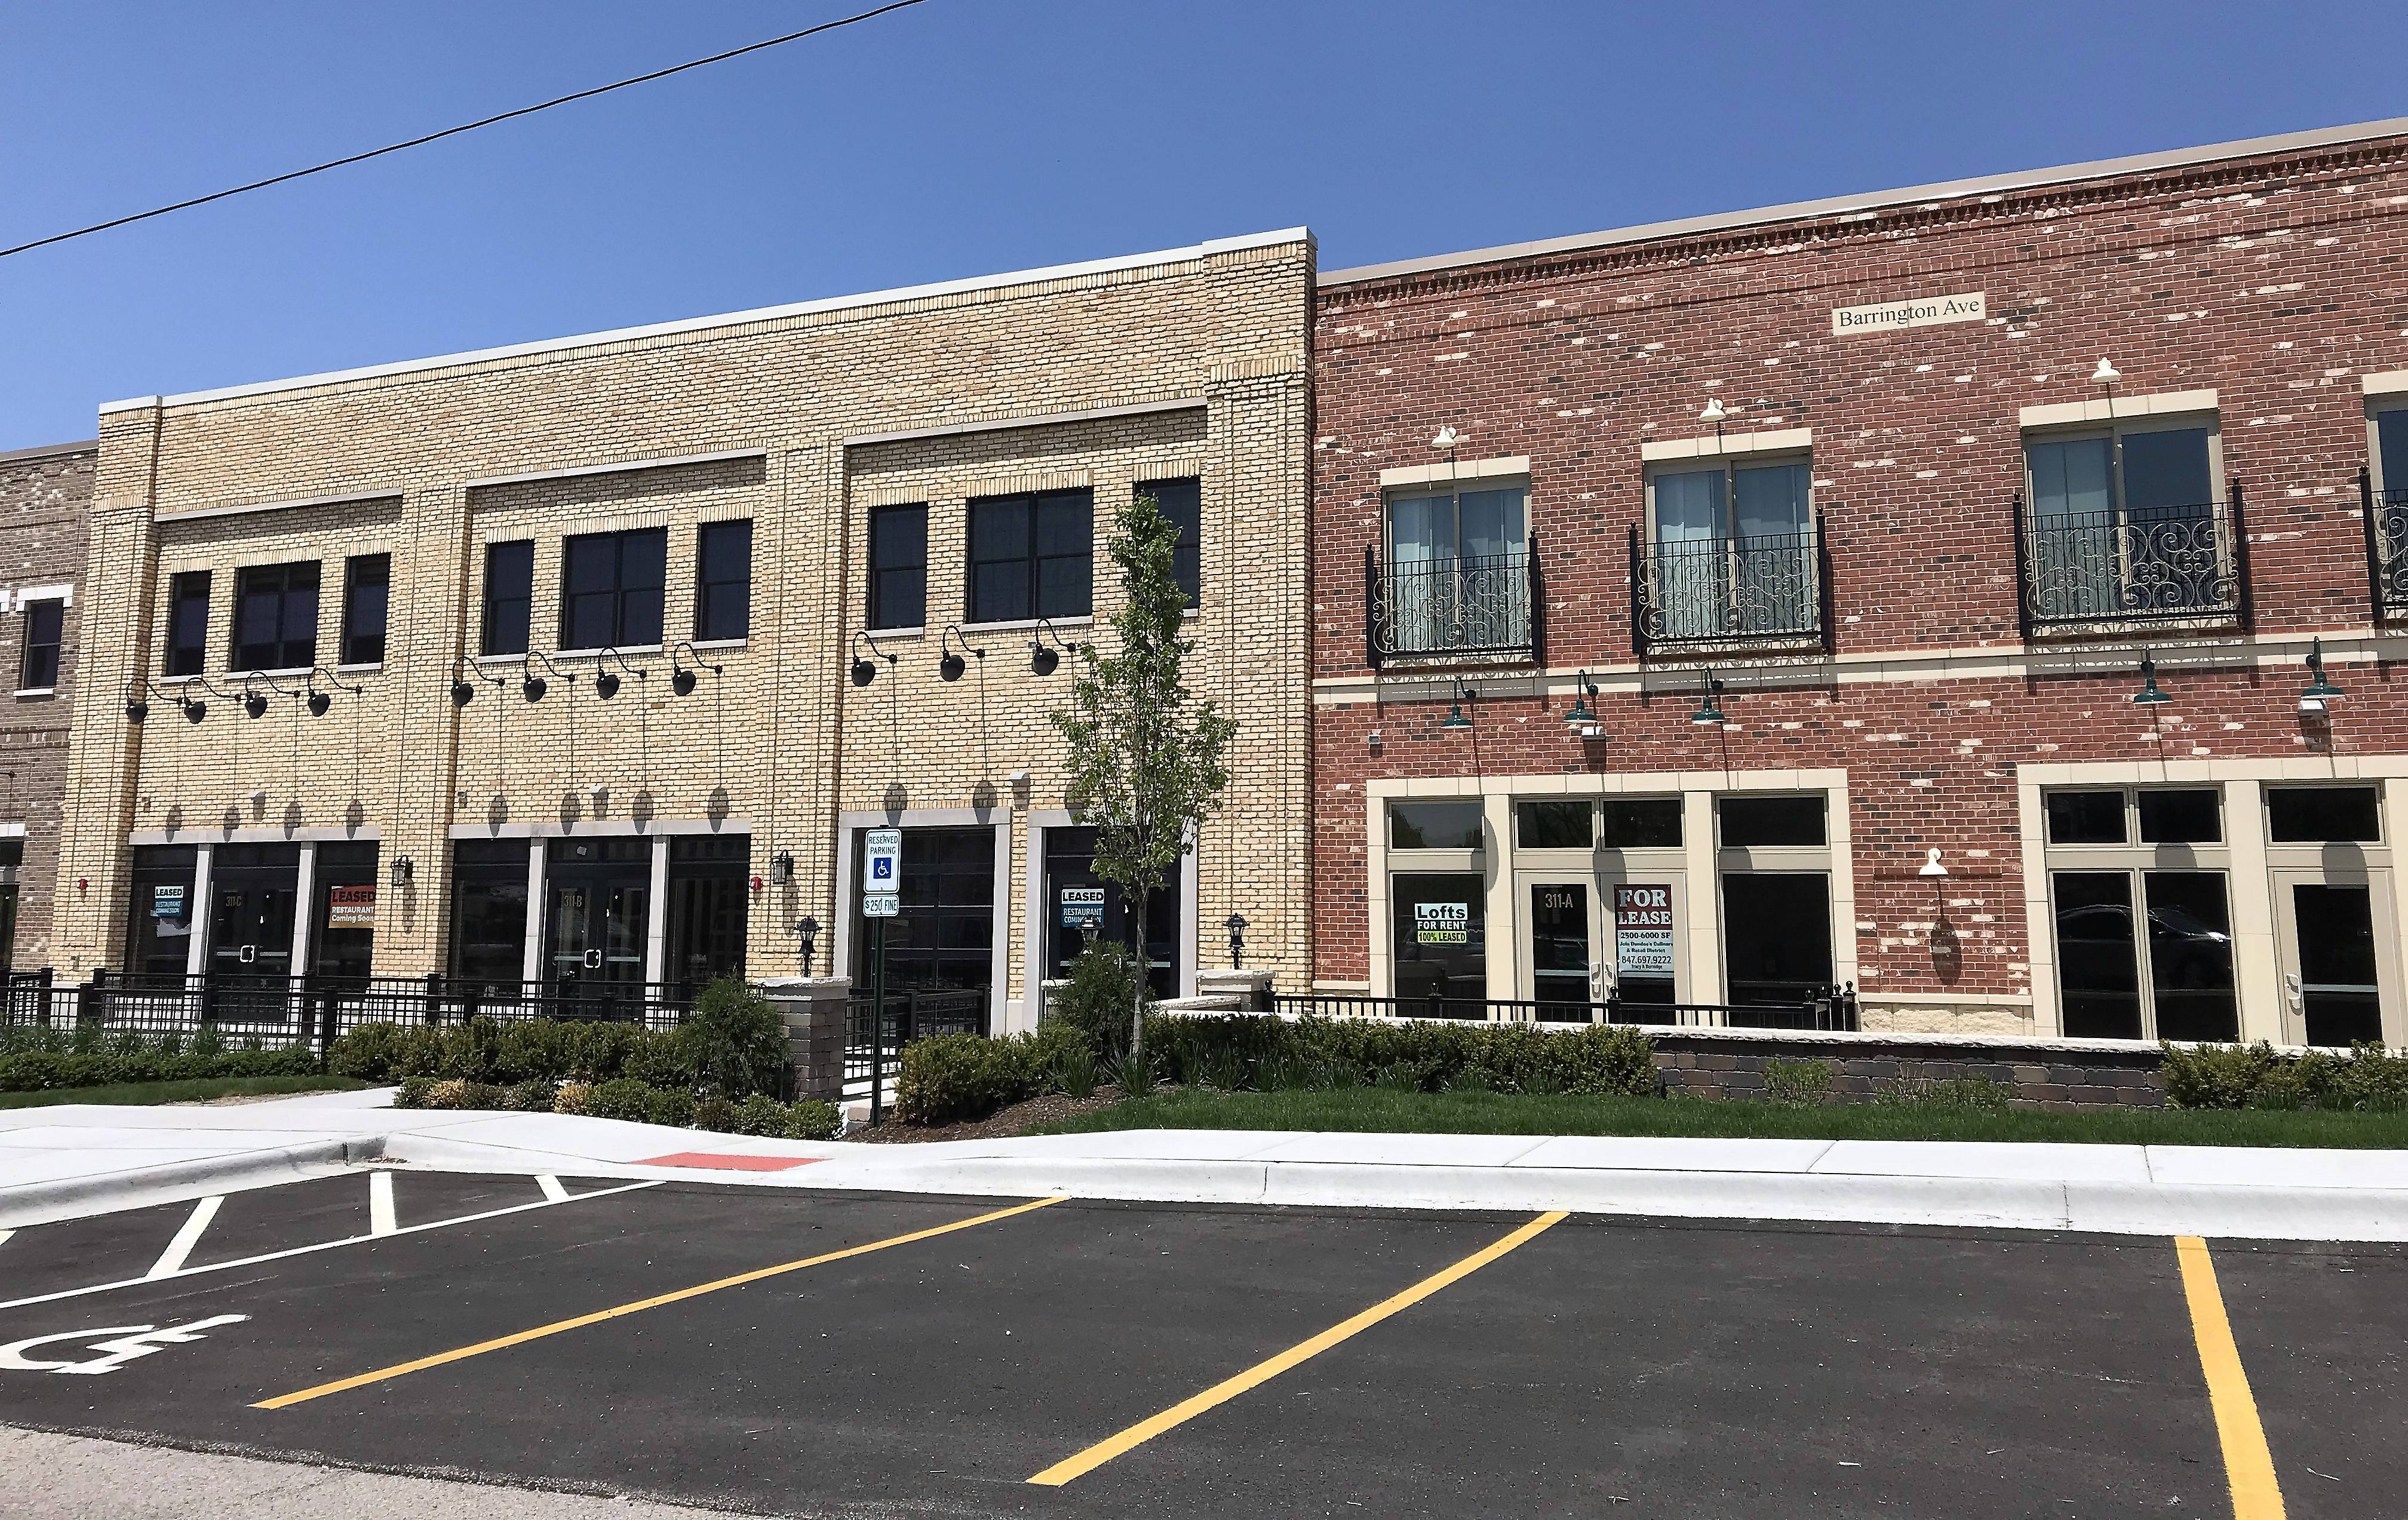 A nanobrewery is expected to open this year in the new 311 Barrington Ave. development in downtown East Dundee.